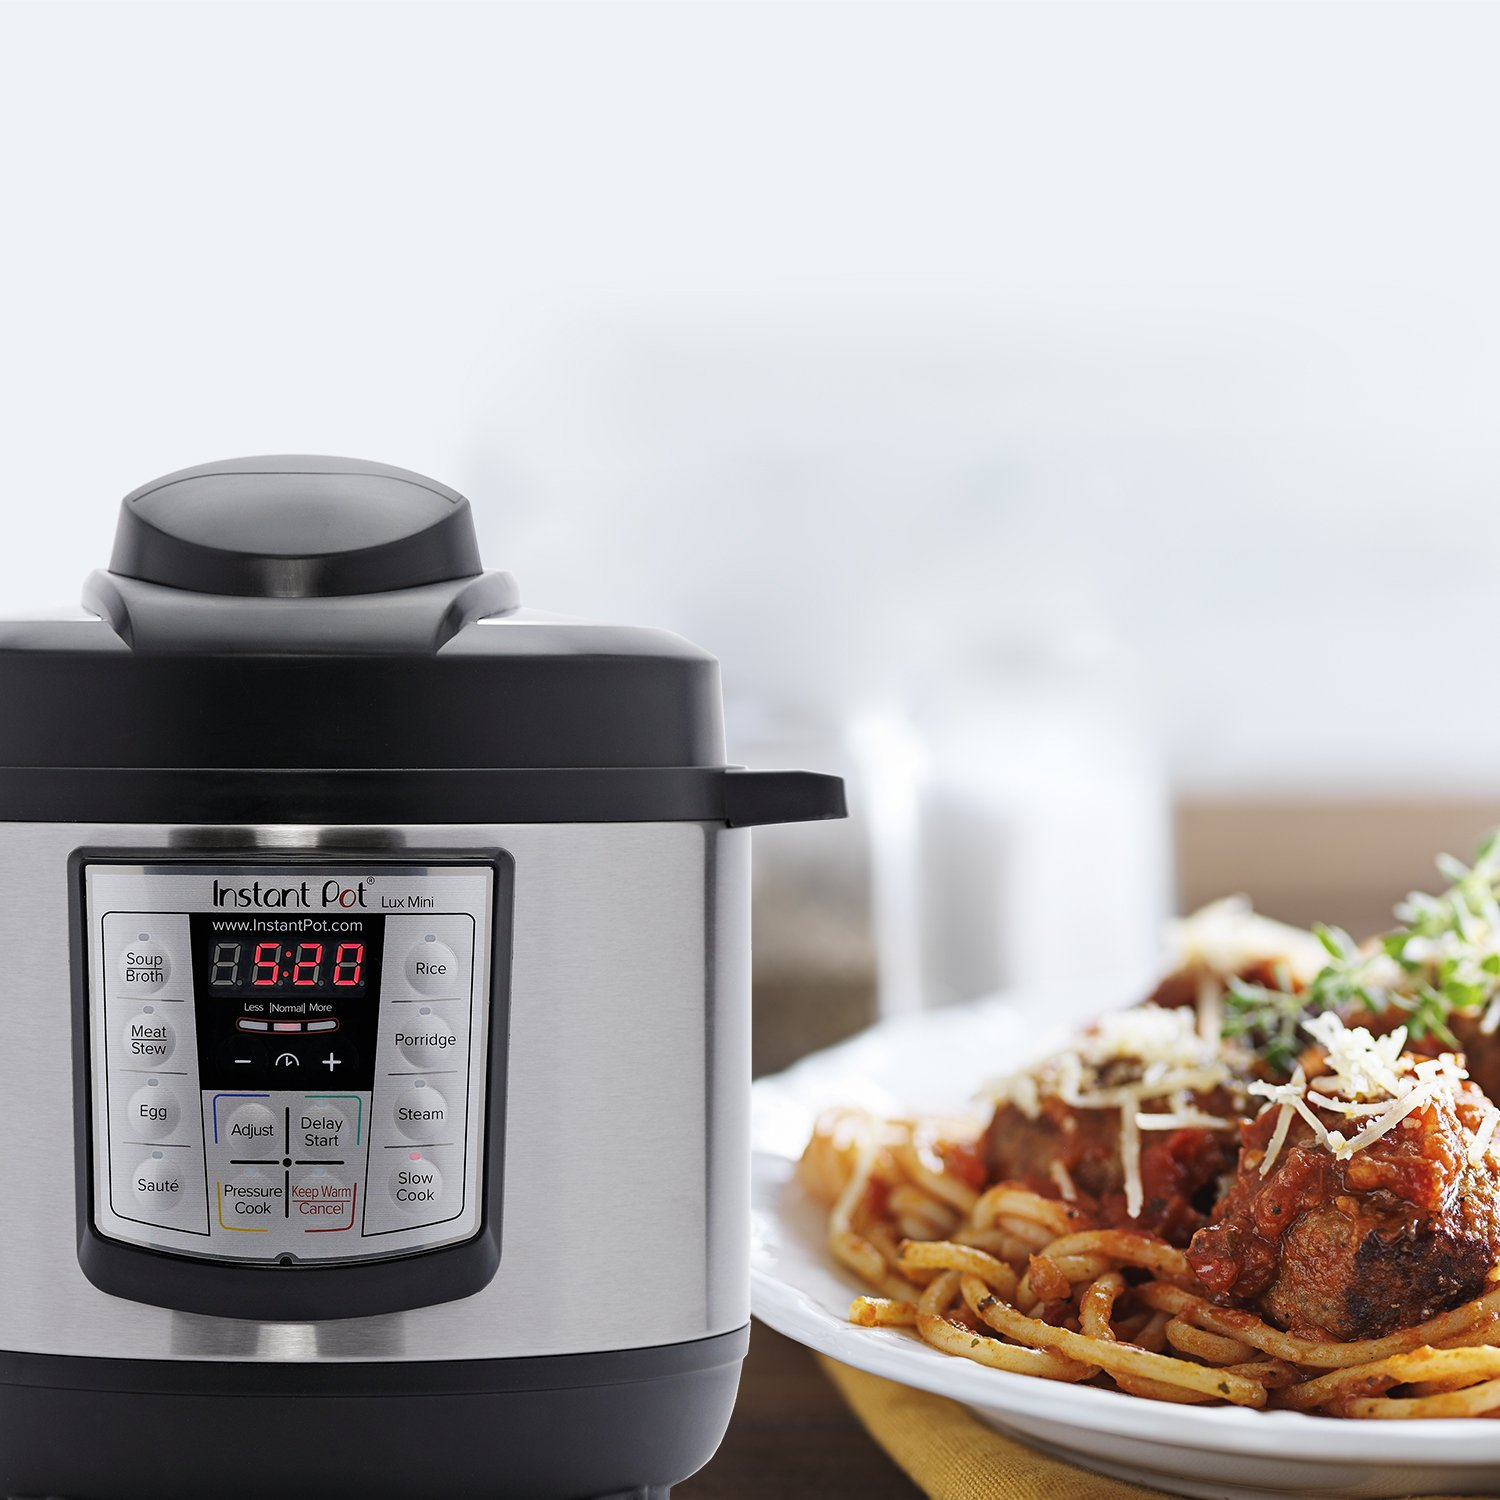 Steamer Rice Cooker and Warmer Instant Pot LUX Mini 3 Qt 6-in-1 ...